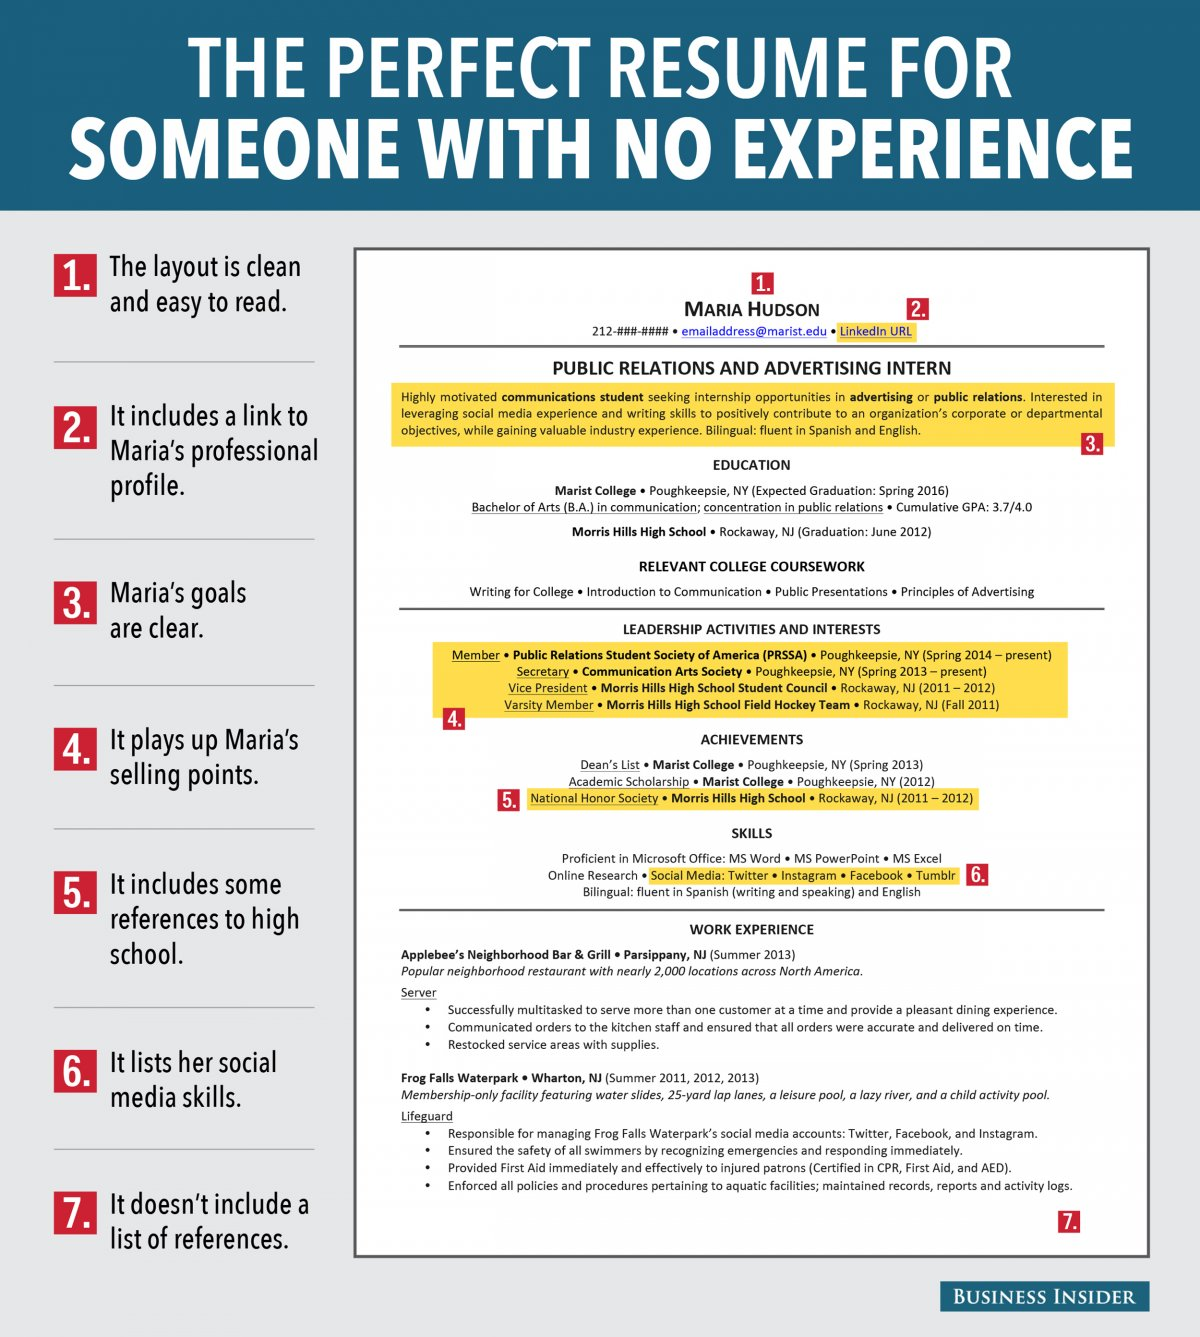 7 Reasons This Is An Excellent Cv For Someone With No Experience